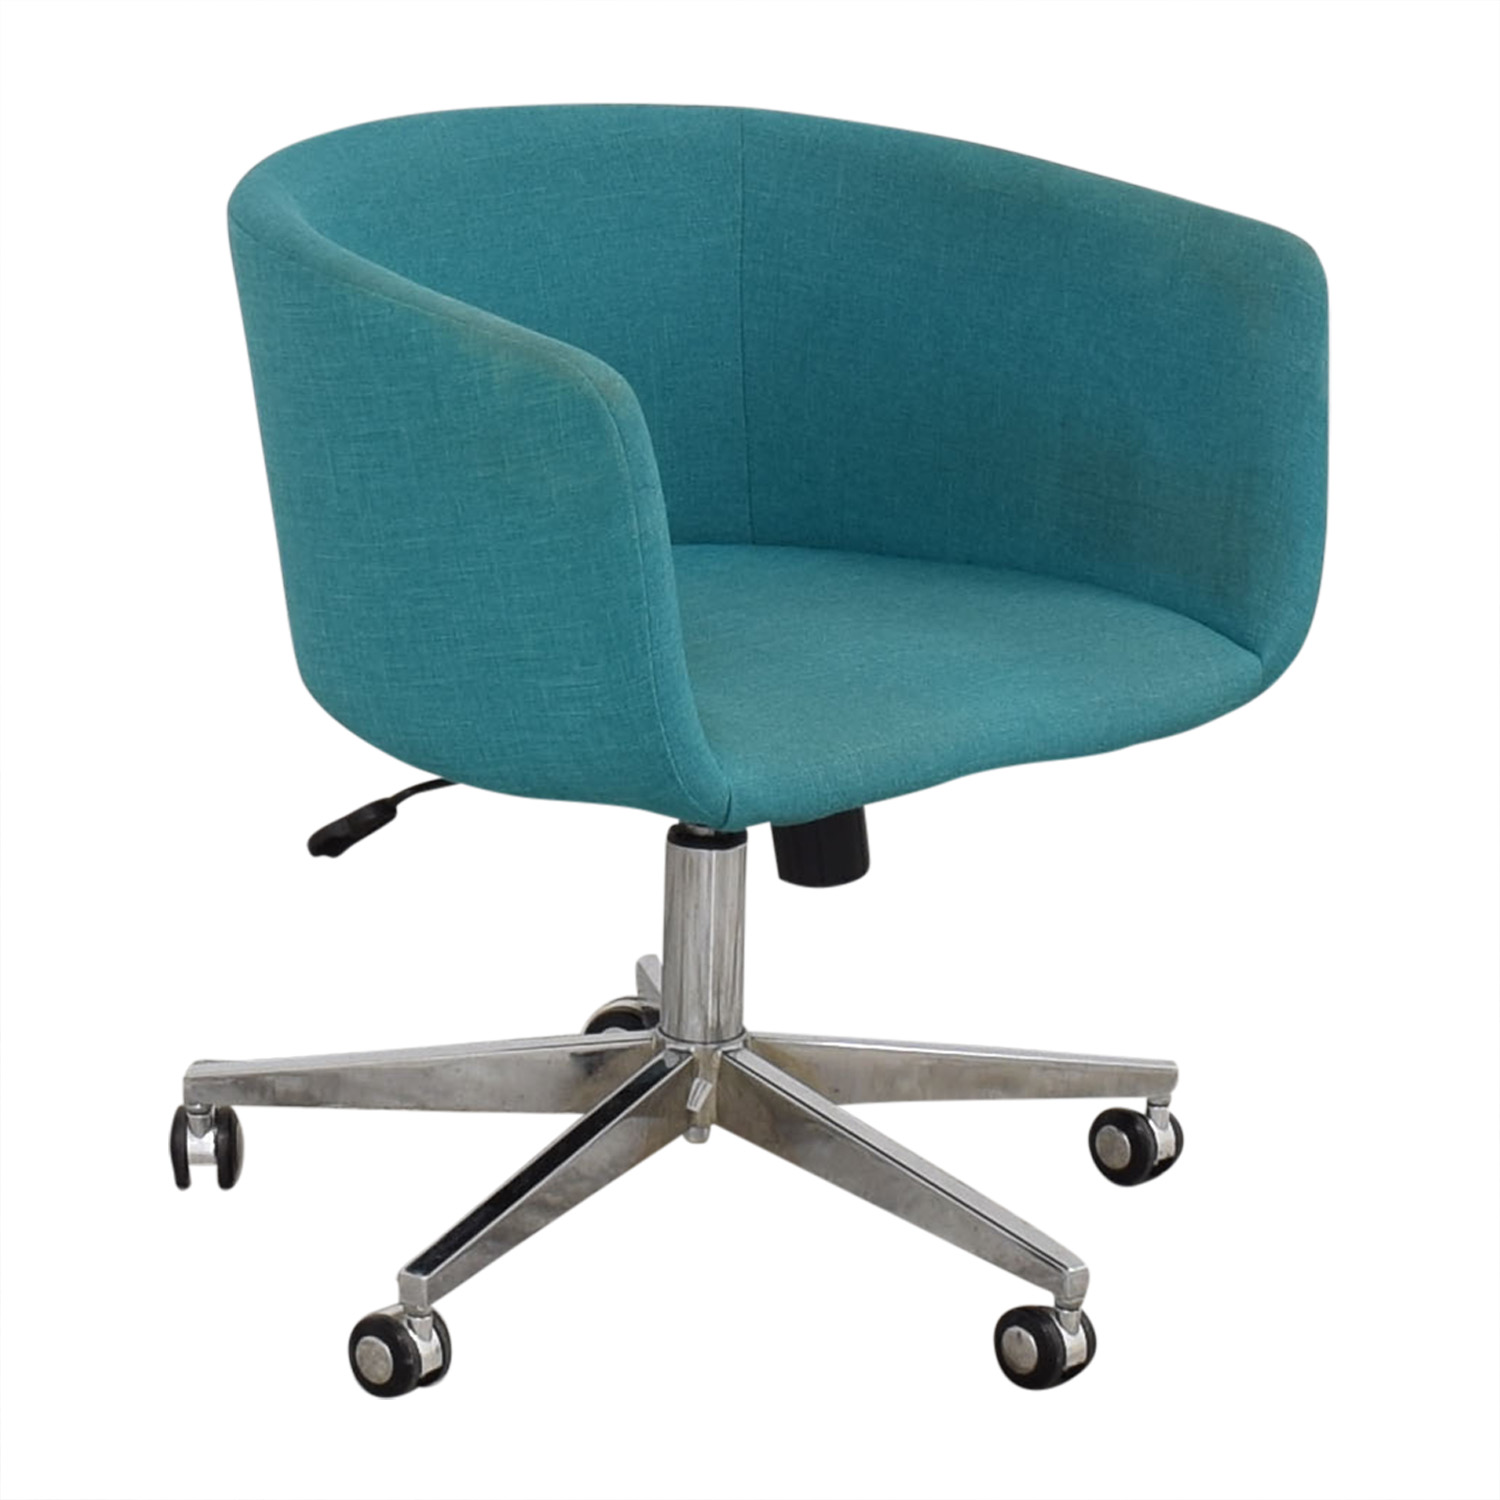 CB2 CB2 Coup Office Chair for sale